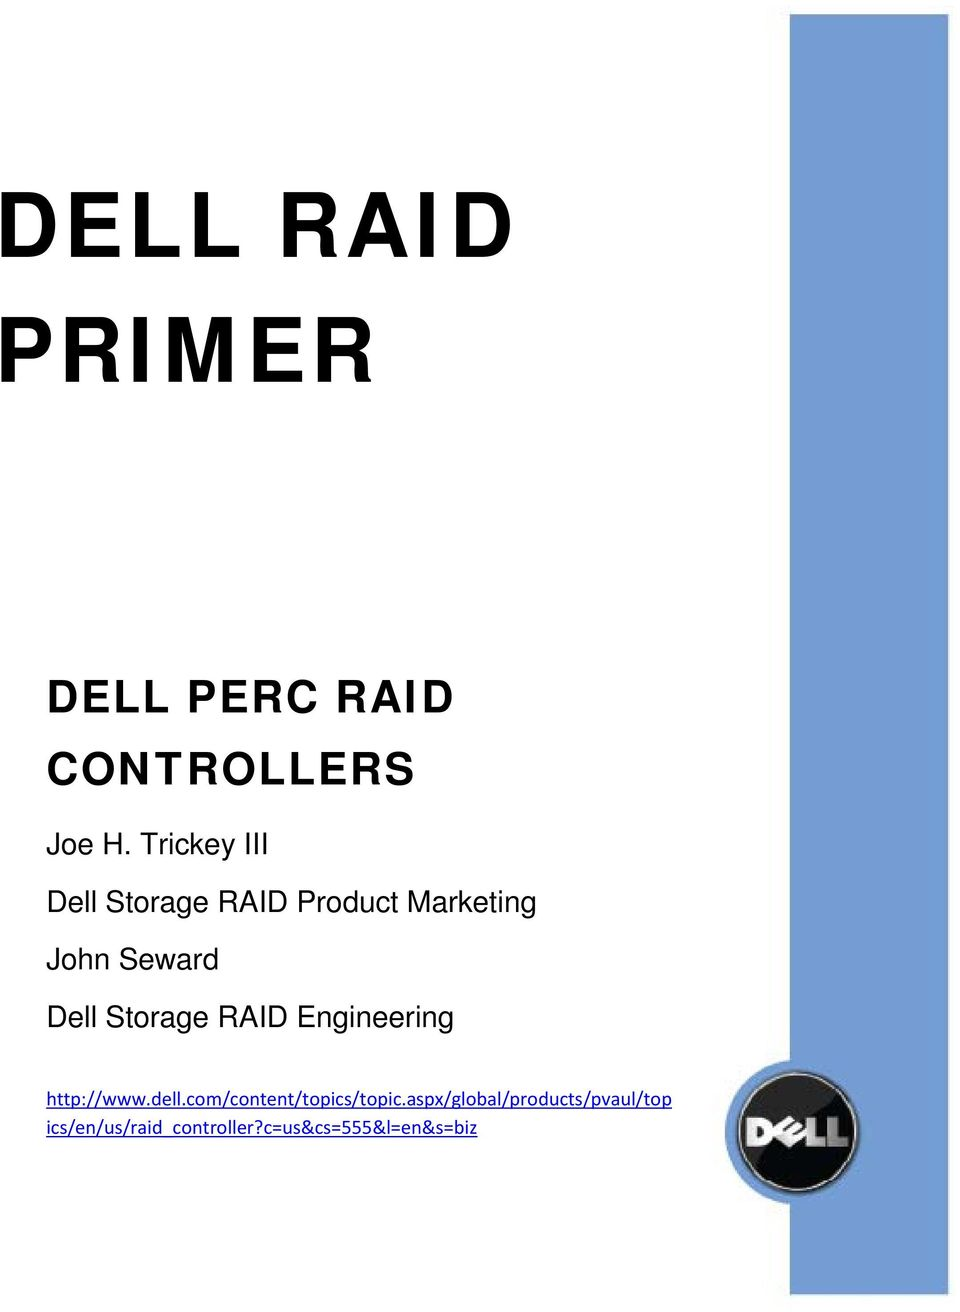 Dell Perc Raid Controller Comparison